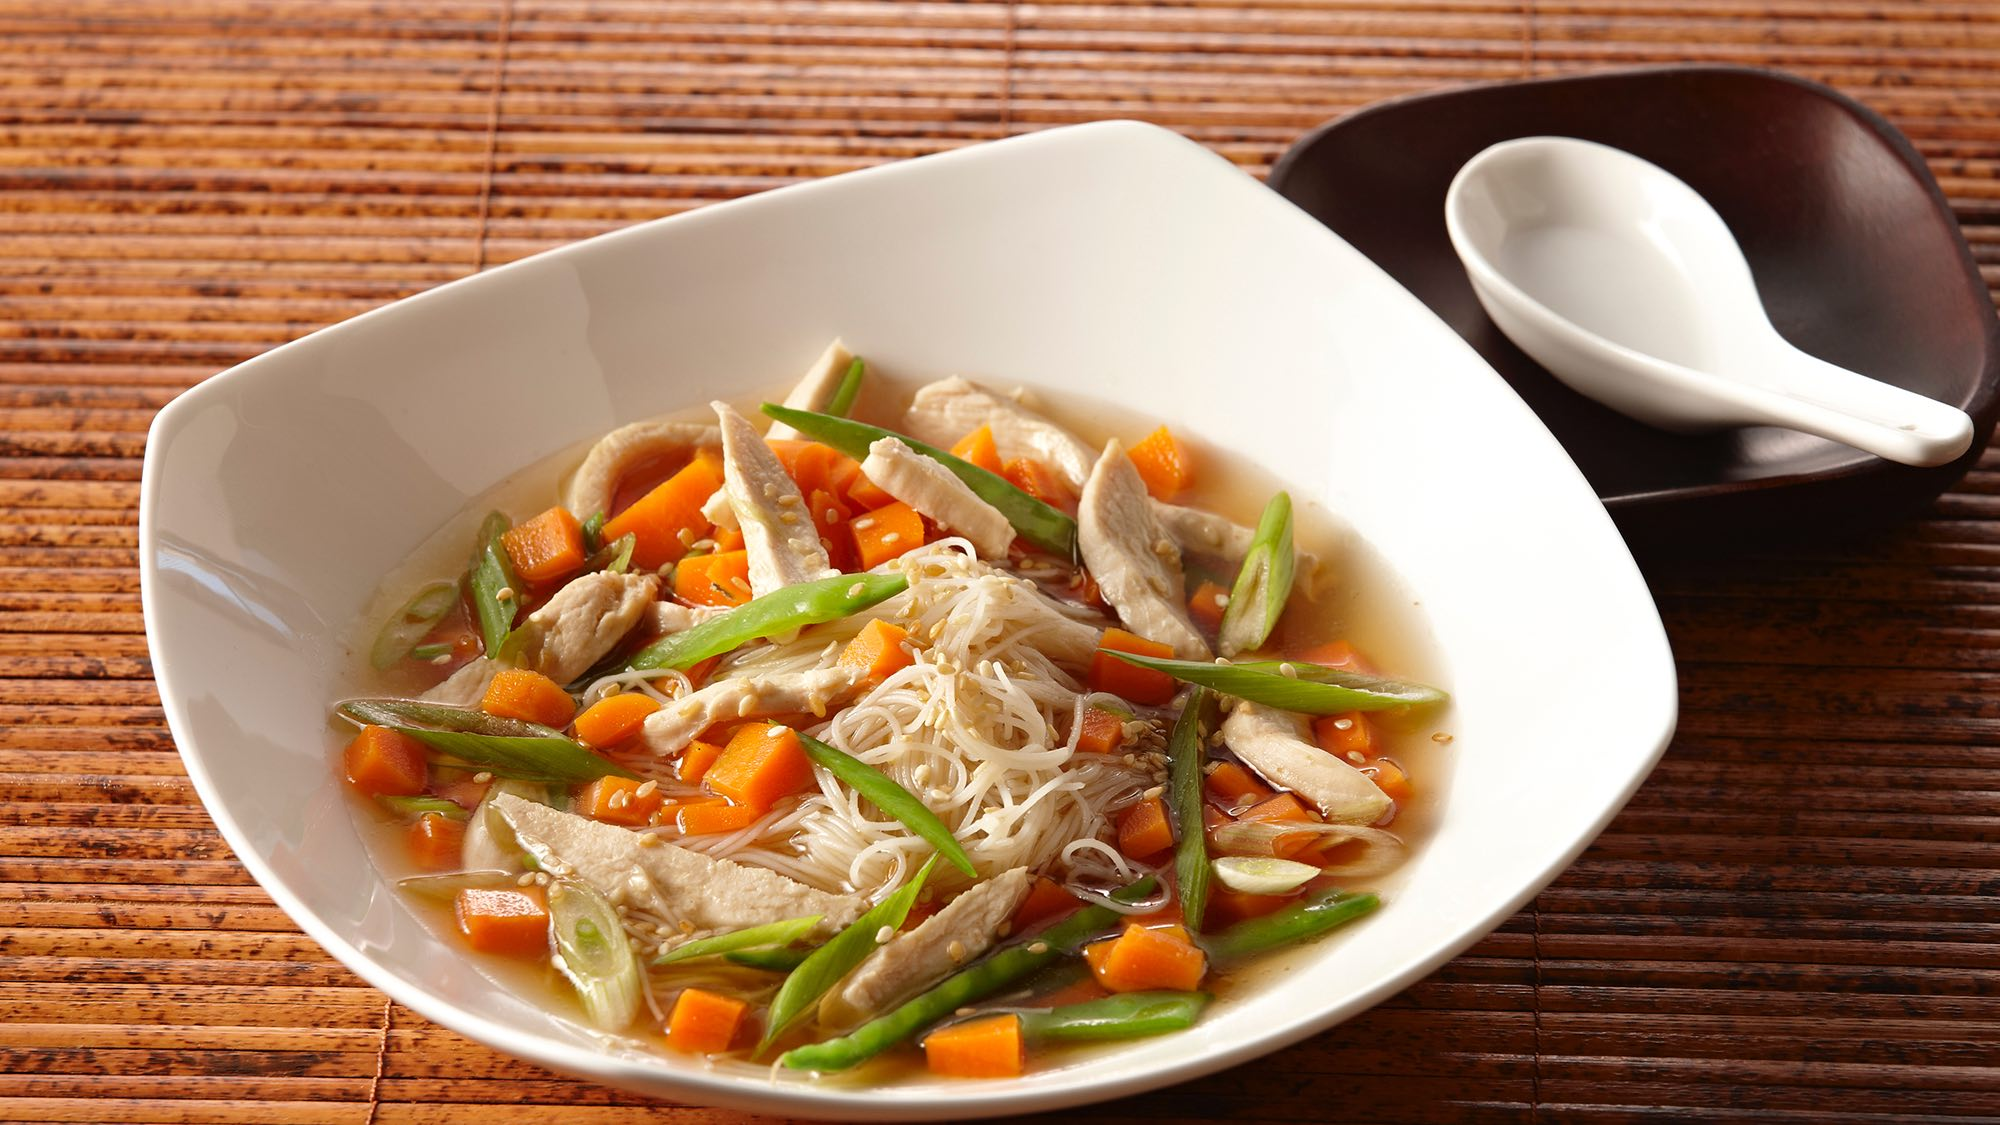 sesame-ginger-chicken-noodle-soup.jpg